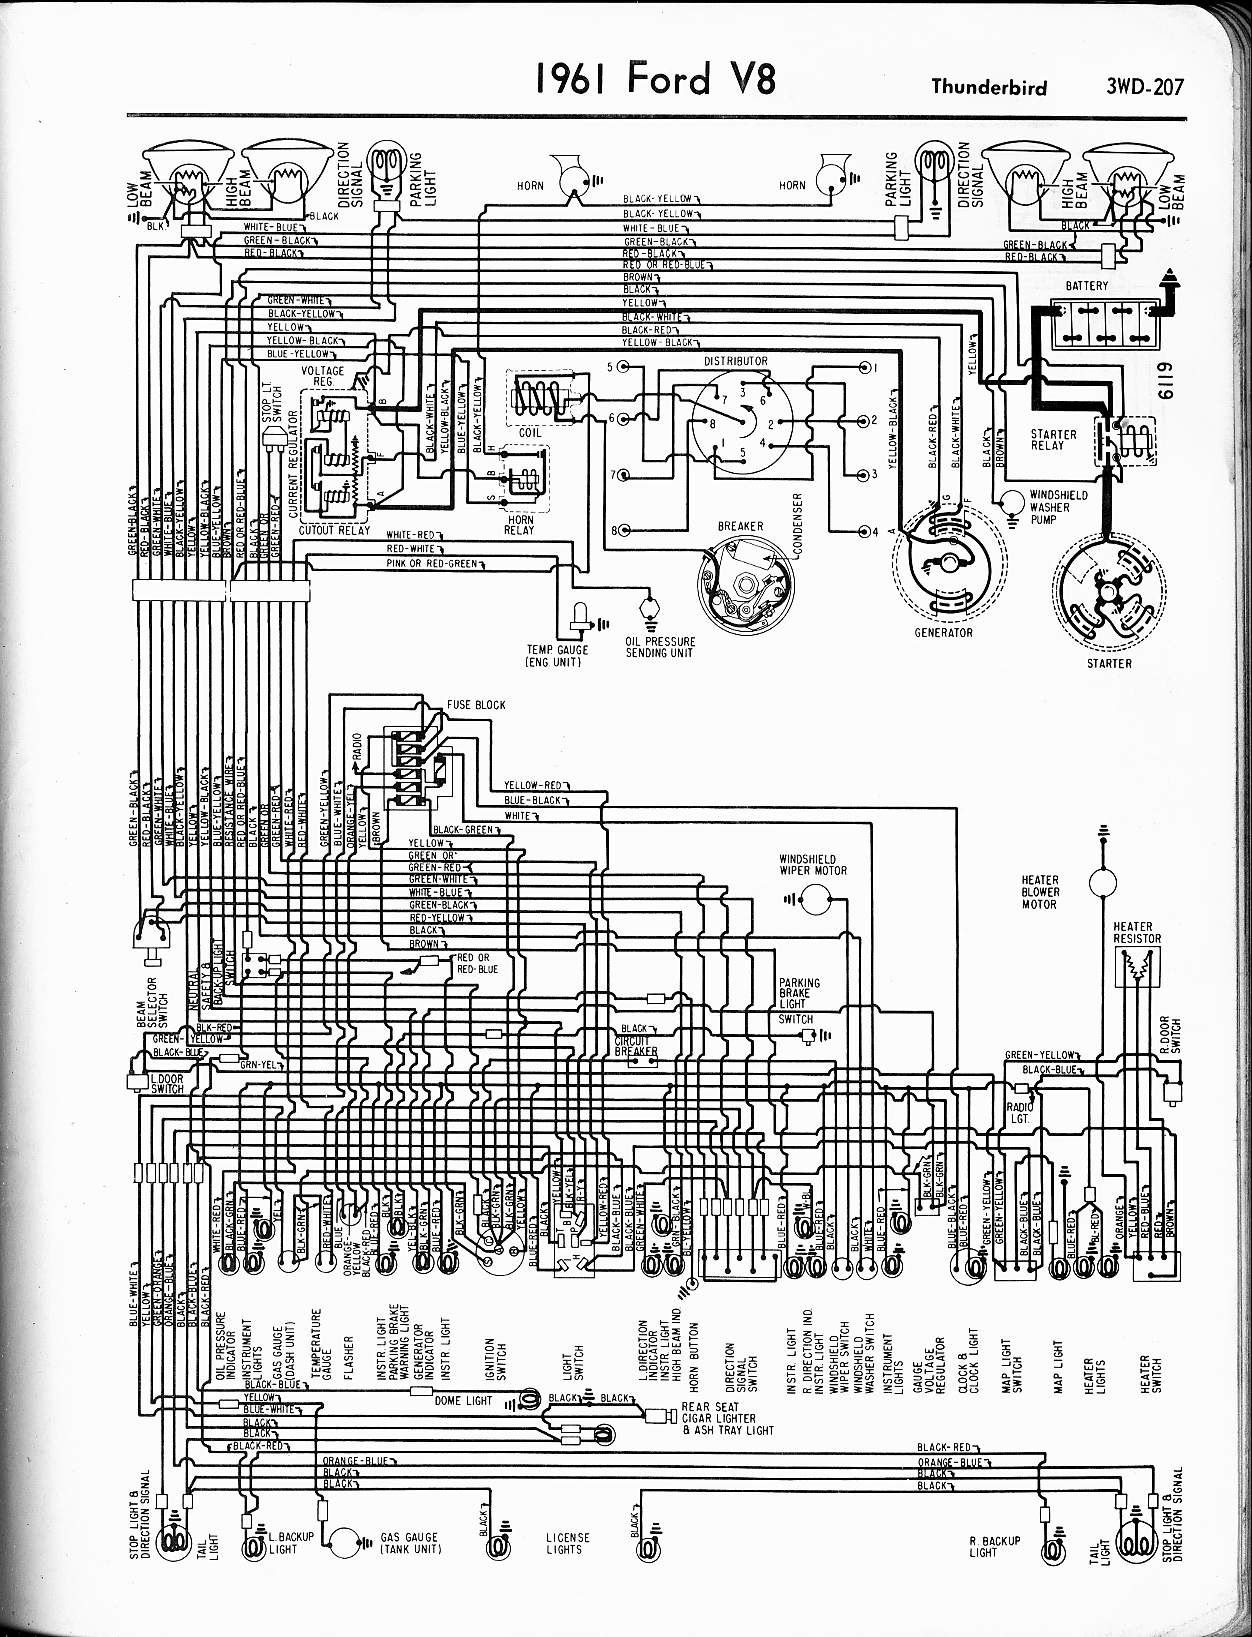 Lincoln Continental Wiring Diagram 1962 Ford Libraries 98 Navigator 1961 Free For You U20221962 Thunderbird